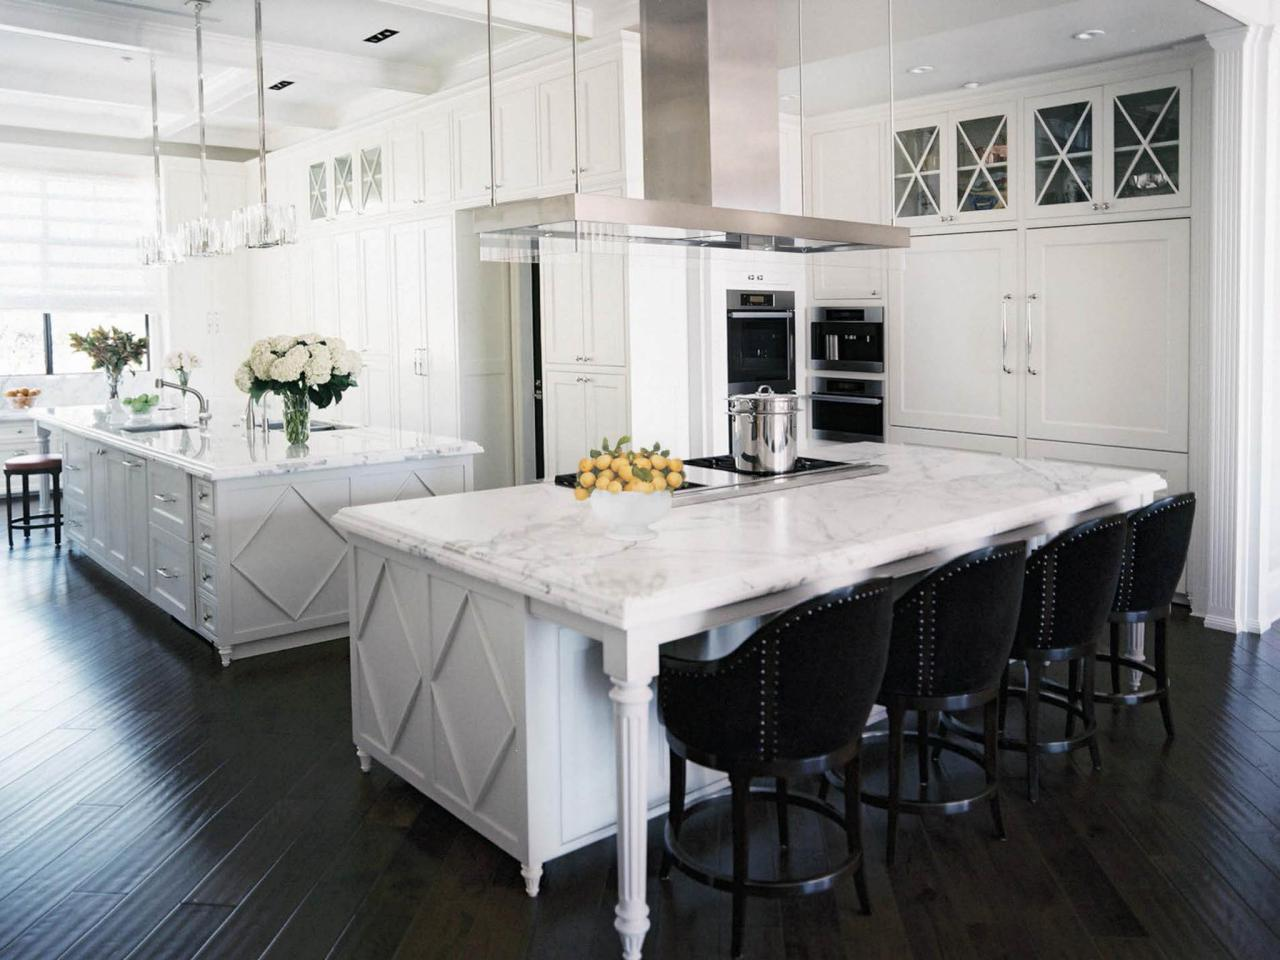 15 Inspiring White Kitchens - Celebrate & Decorate